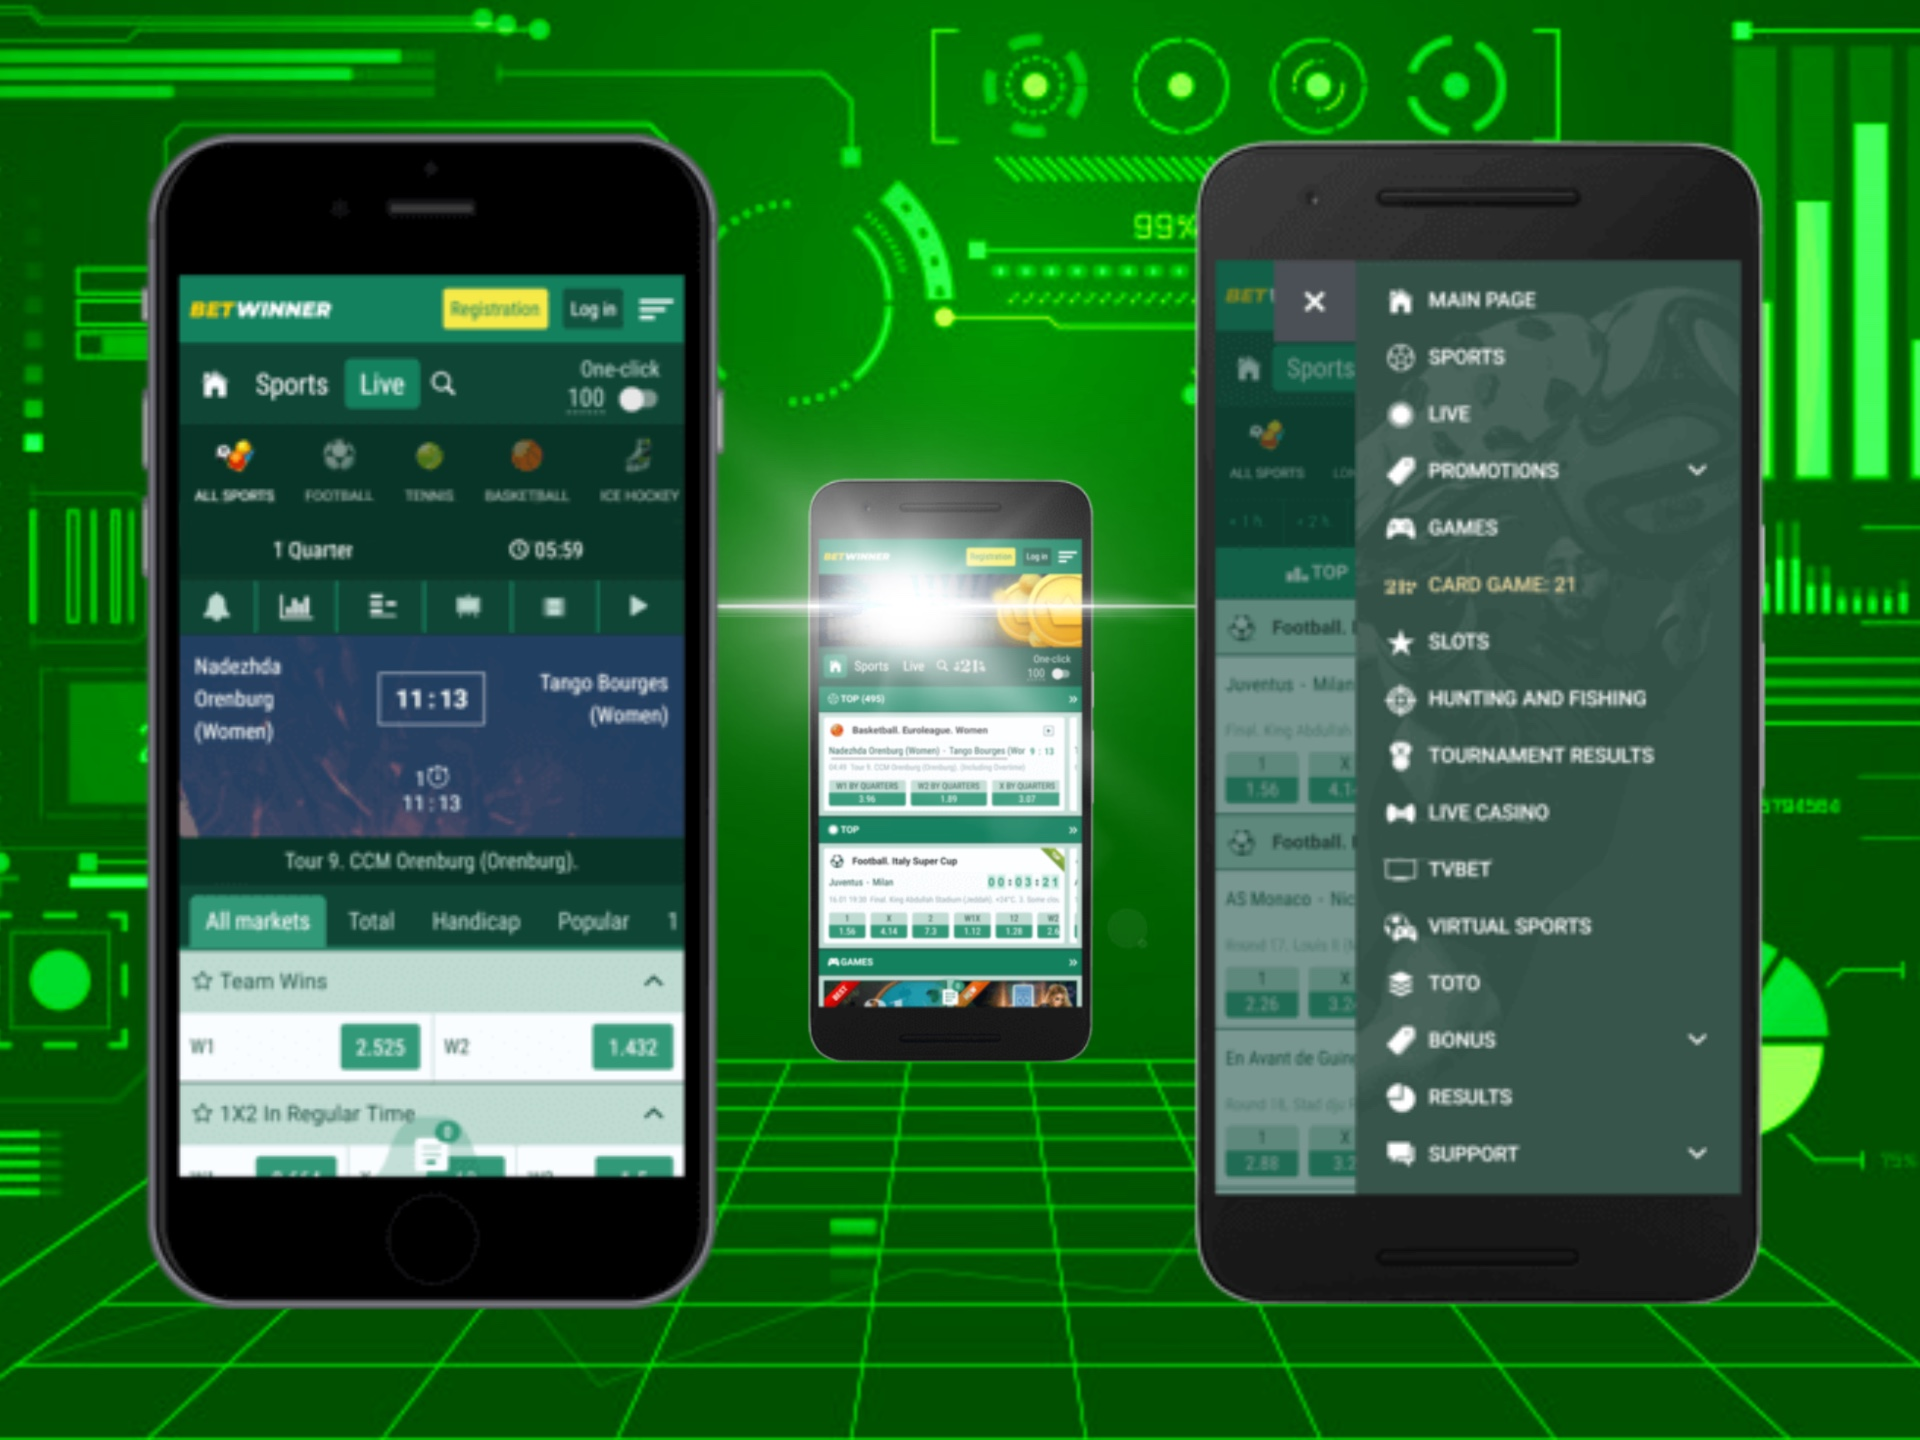 Betwinner mobile version has almost all the same features as a desktop version does.